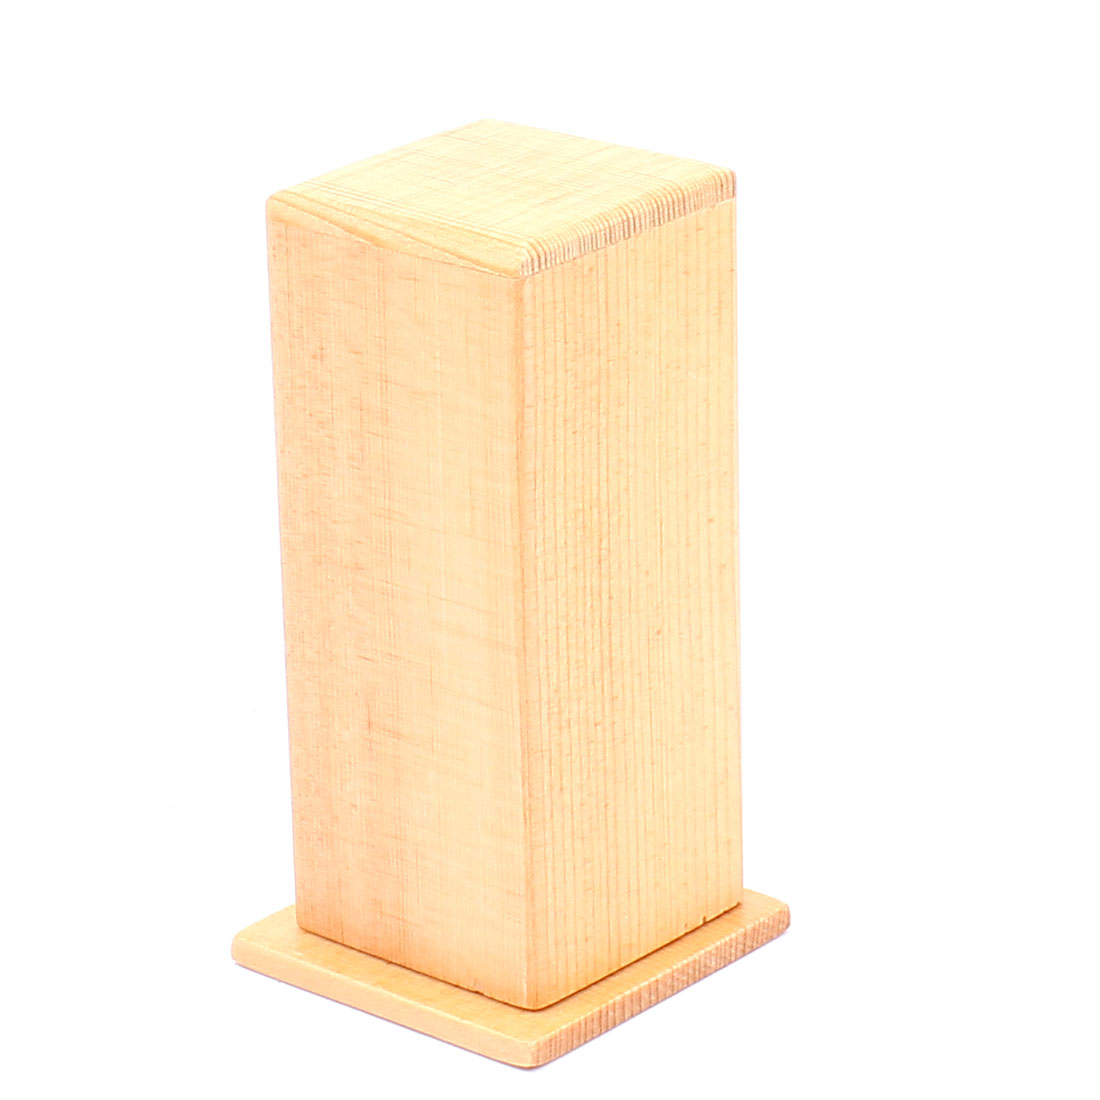 Household Crafting Square Shape Wooden Toothpick Box Case Holder Wood Color